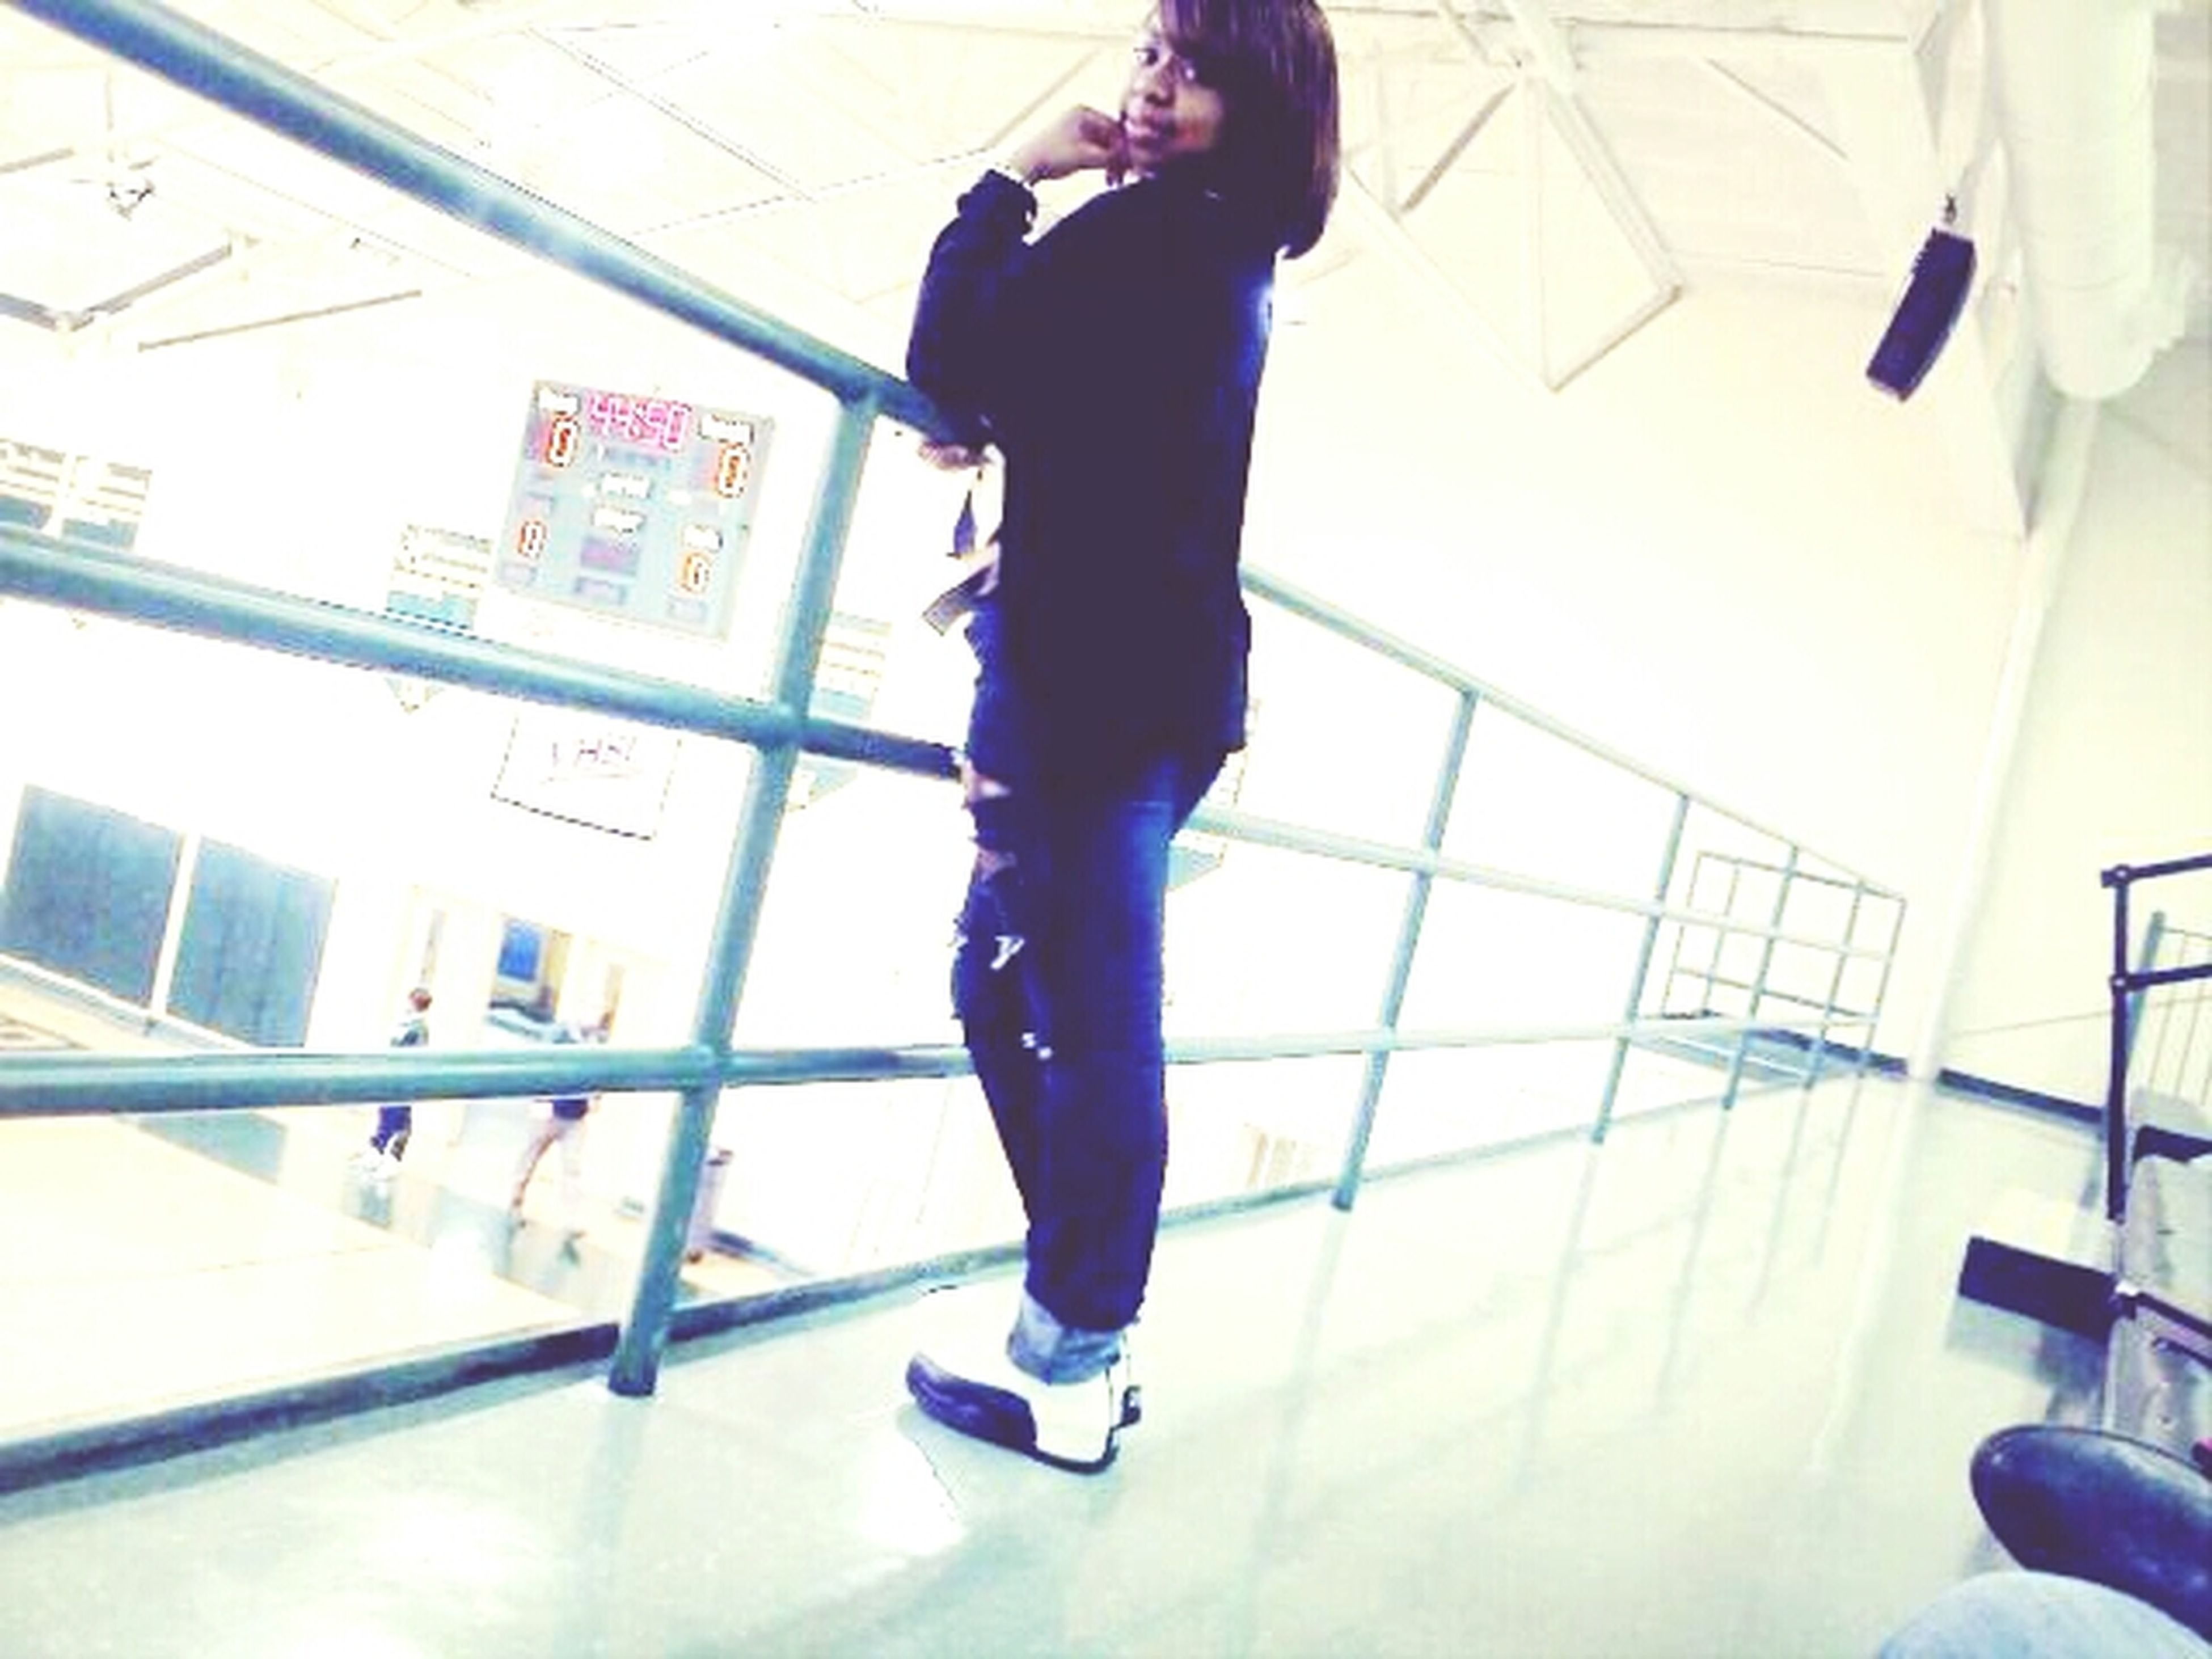 Old Picture, I Love It Though!